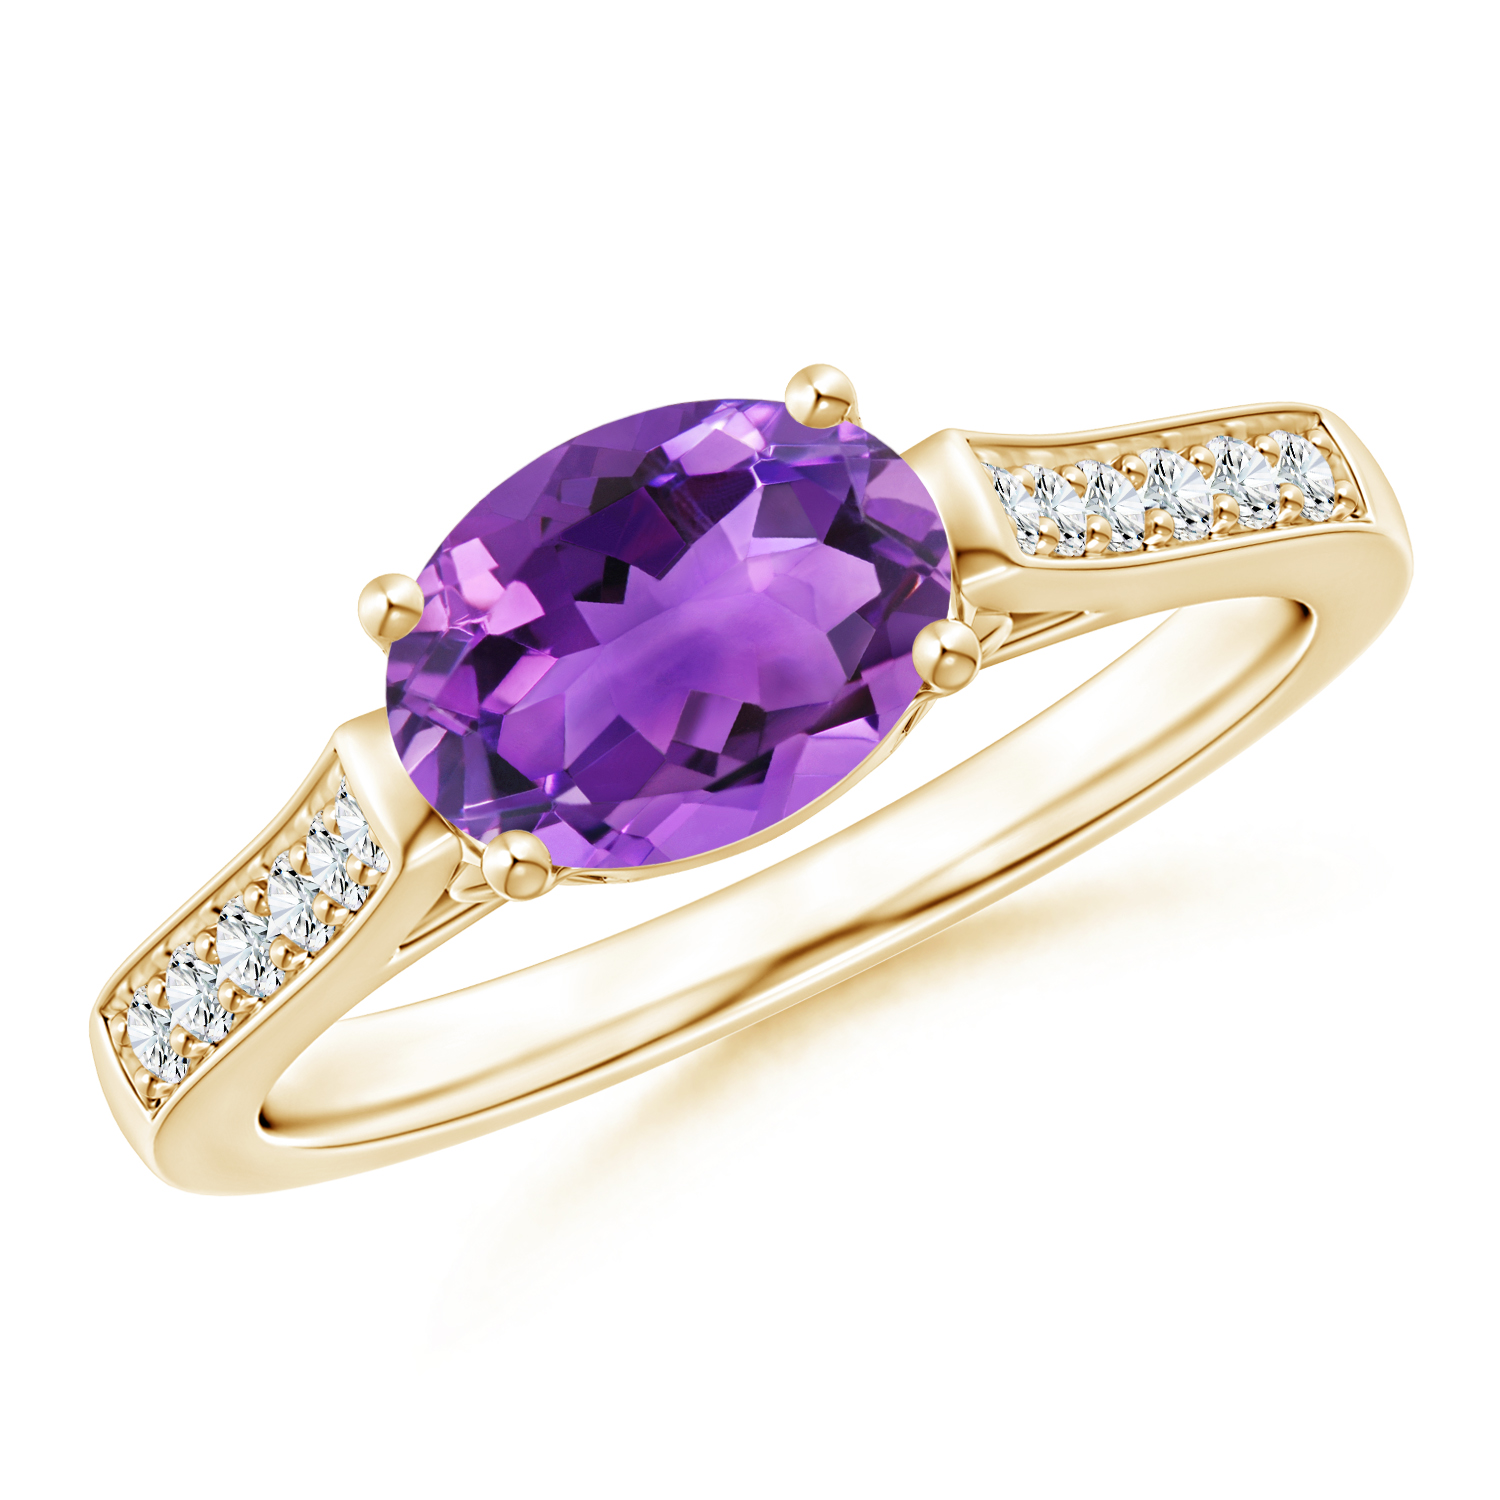 East West Set Oval Amethyst Solitaire Ring with Diamond Accents - Angara.com